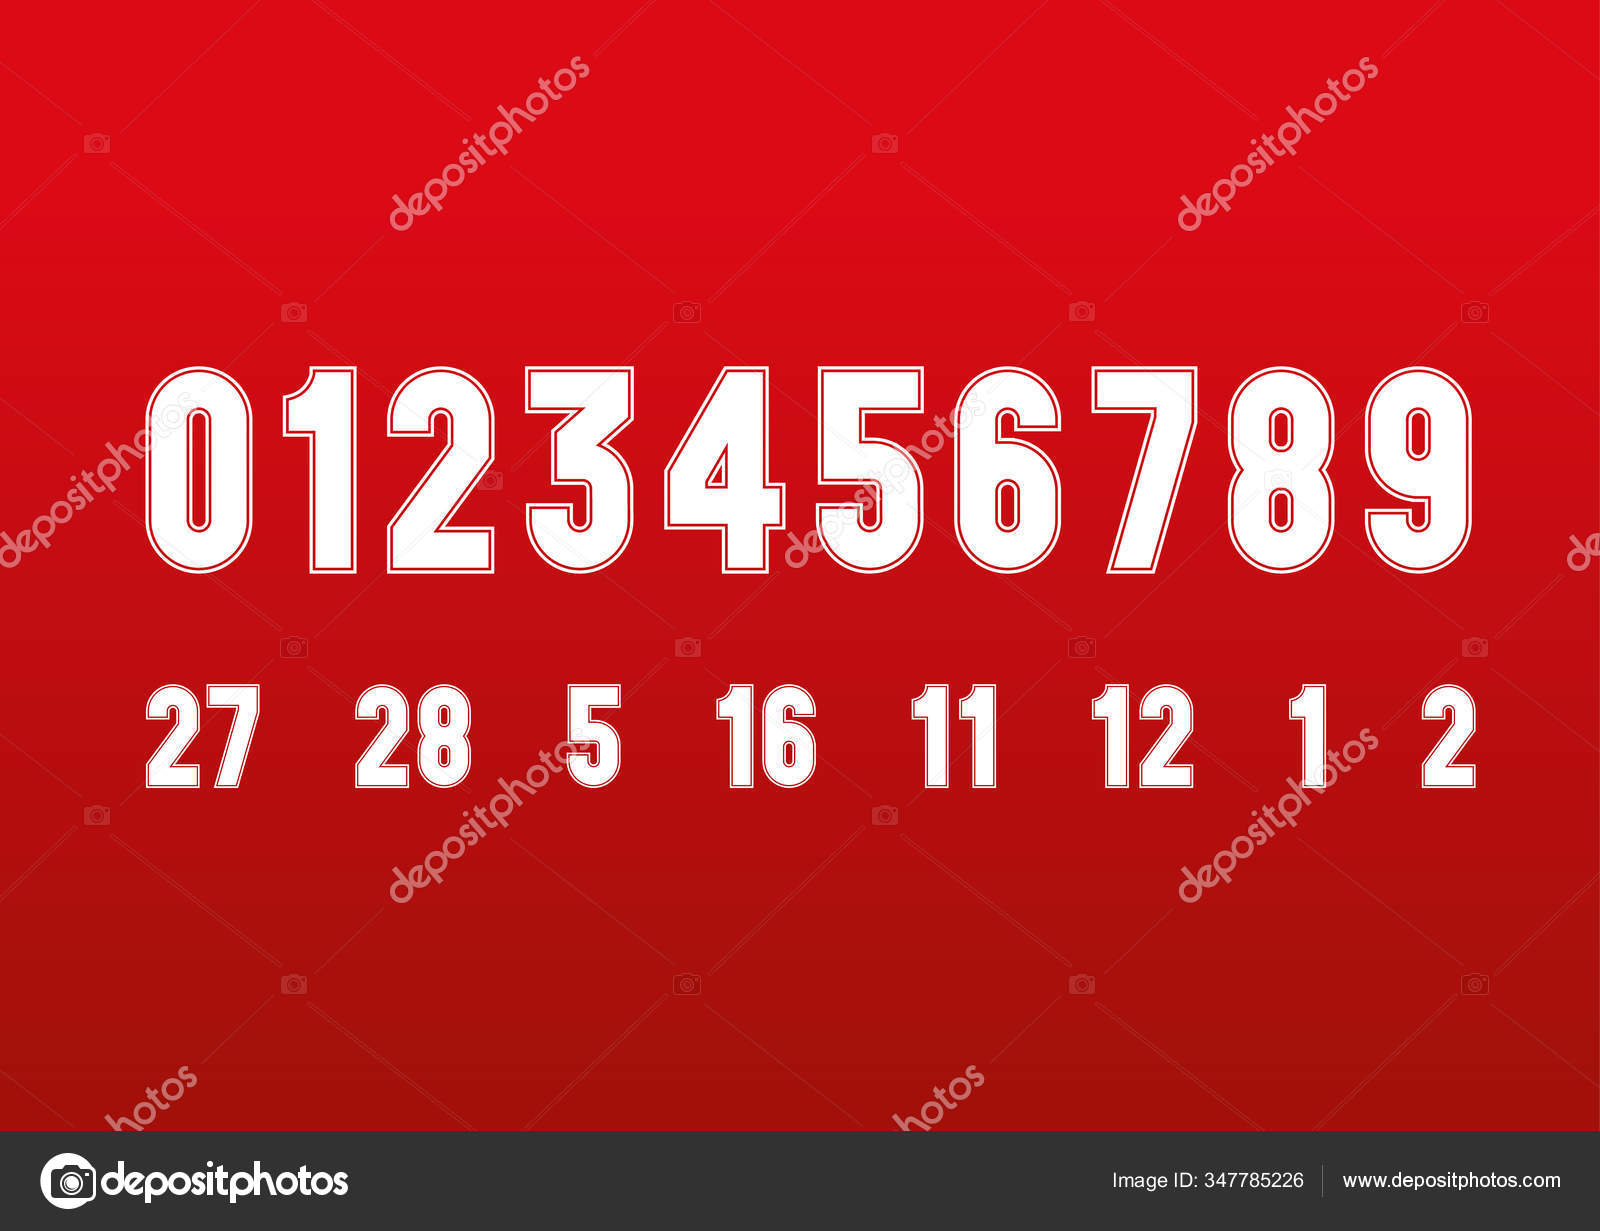 Vintage Style Ferrari Formula Race Numbers Font Red Background Vector Stock Vector C Frizio 347785226